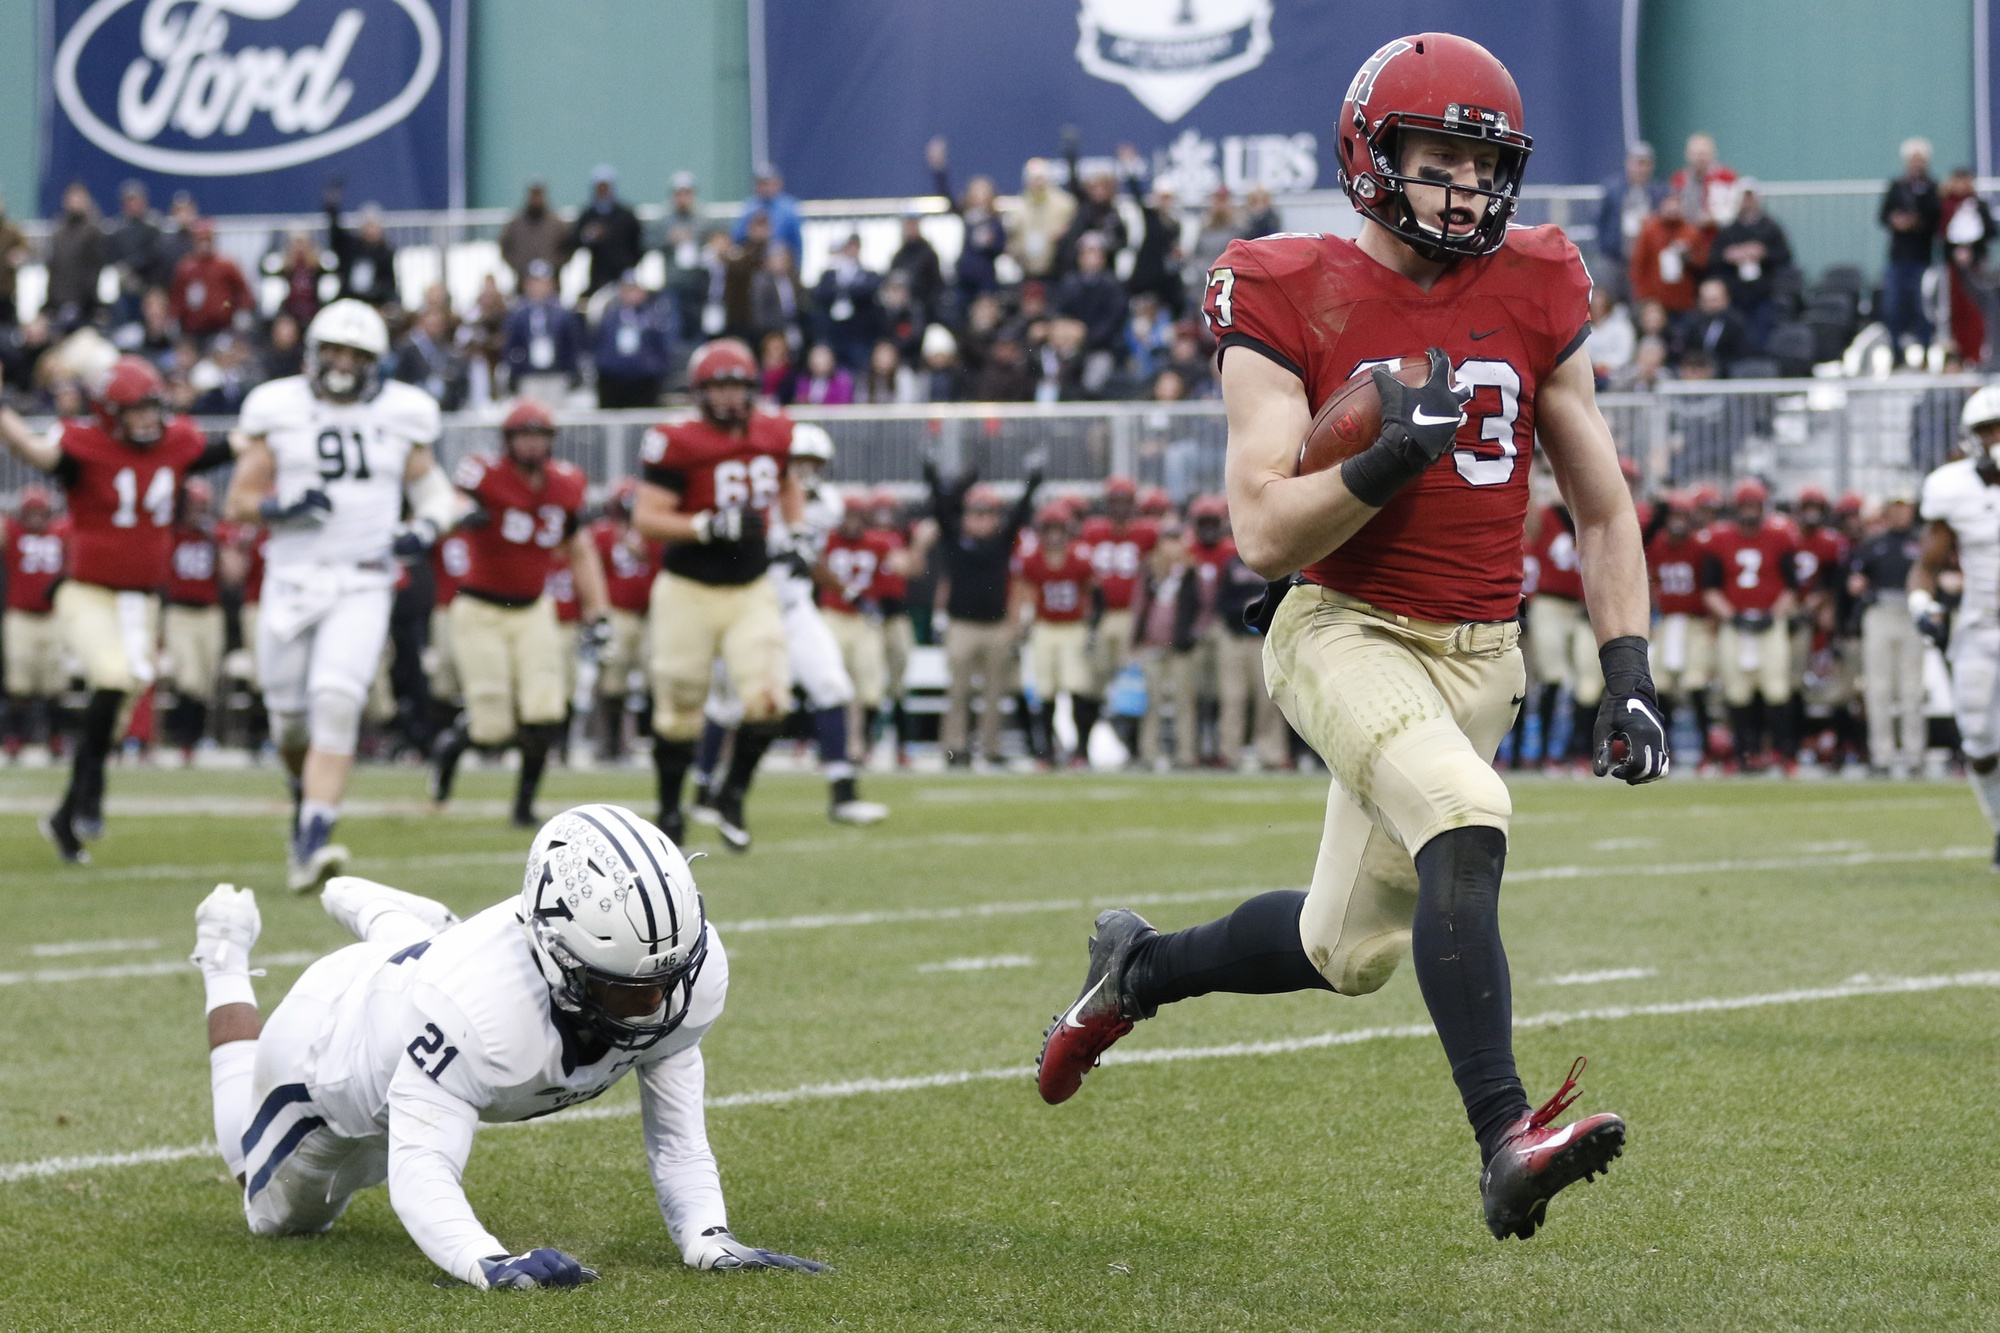 Senior wide receiver Jack Cook sprints past a Yale defender during last's season playing of The Game.